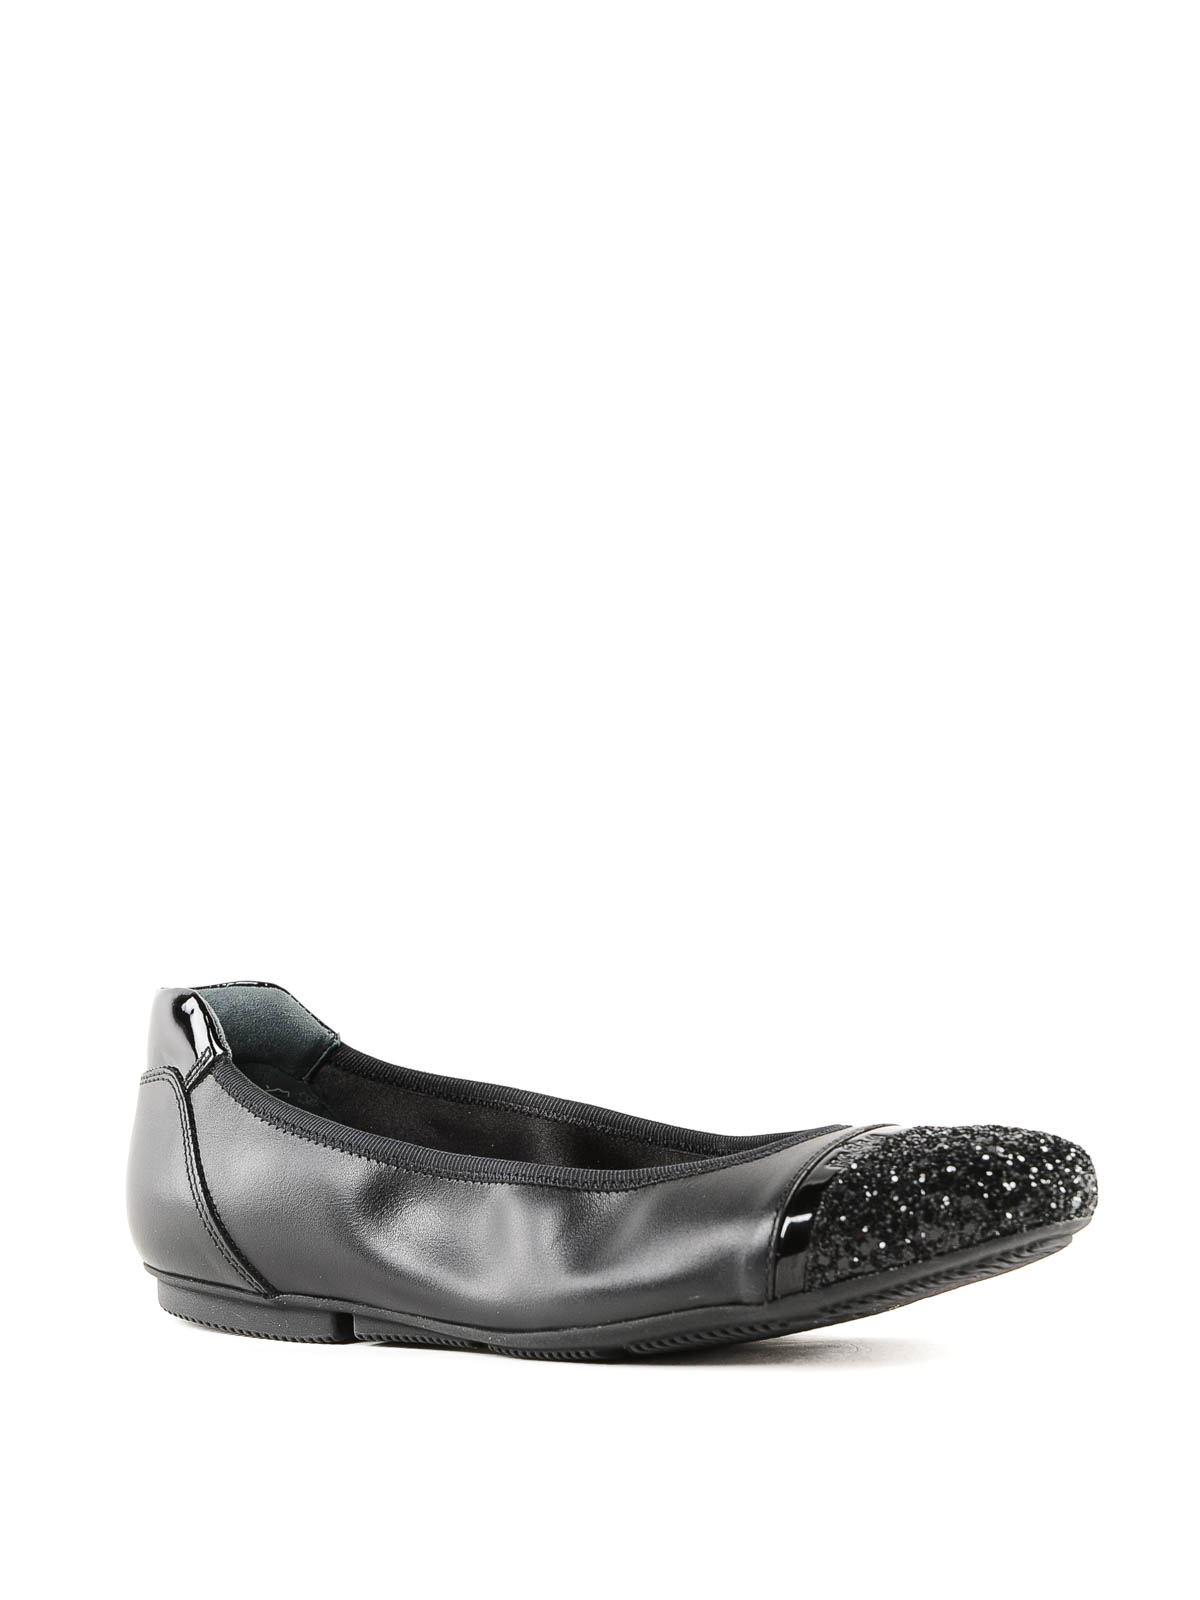 8750e7cb9f55 HOGAN  flat shoes online - Black leather and glitter flat shoes